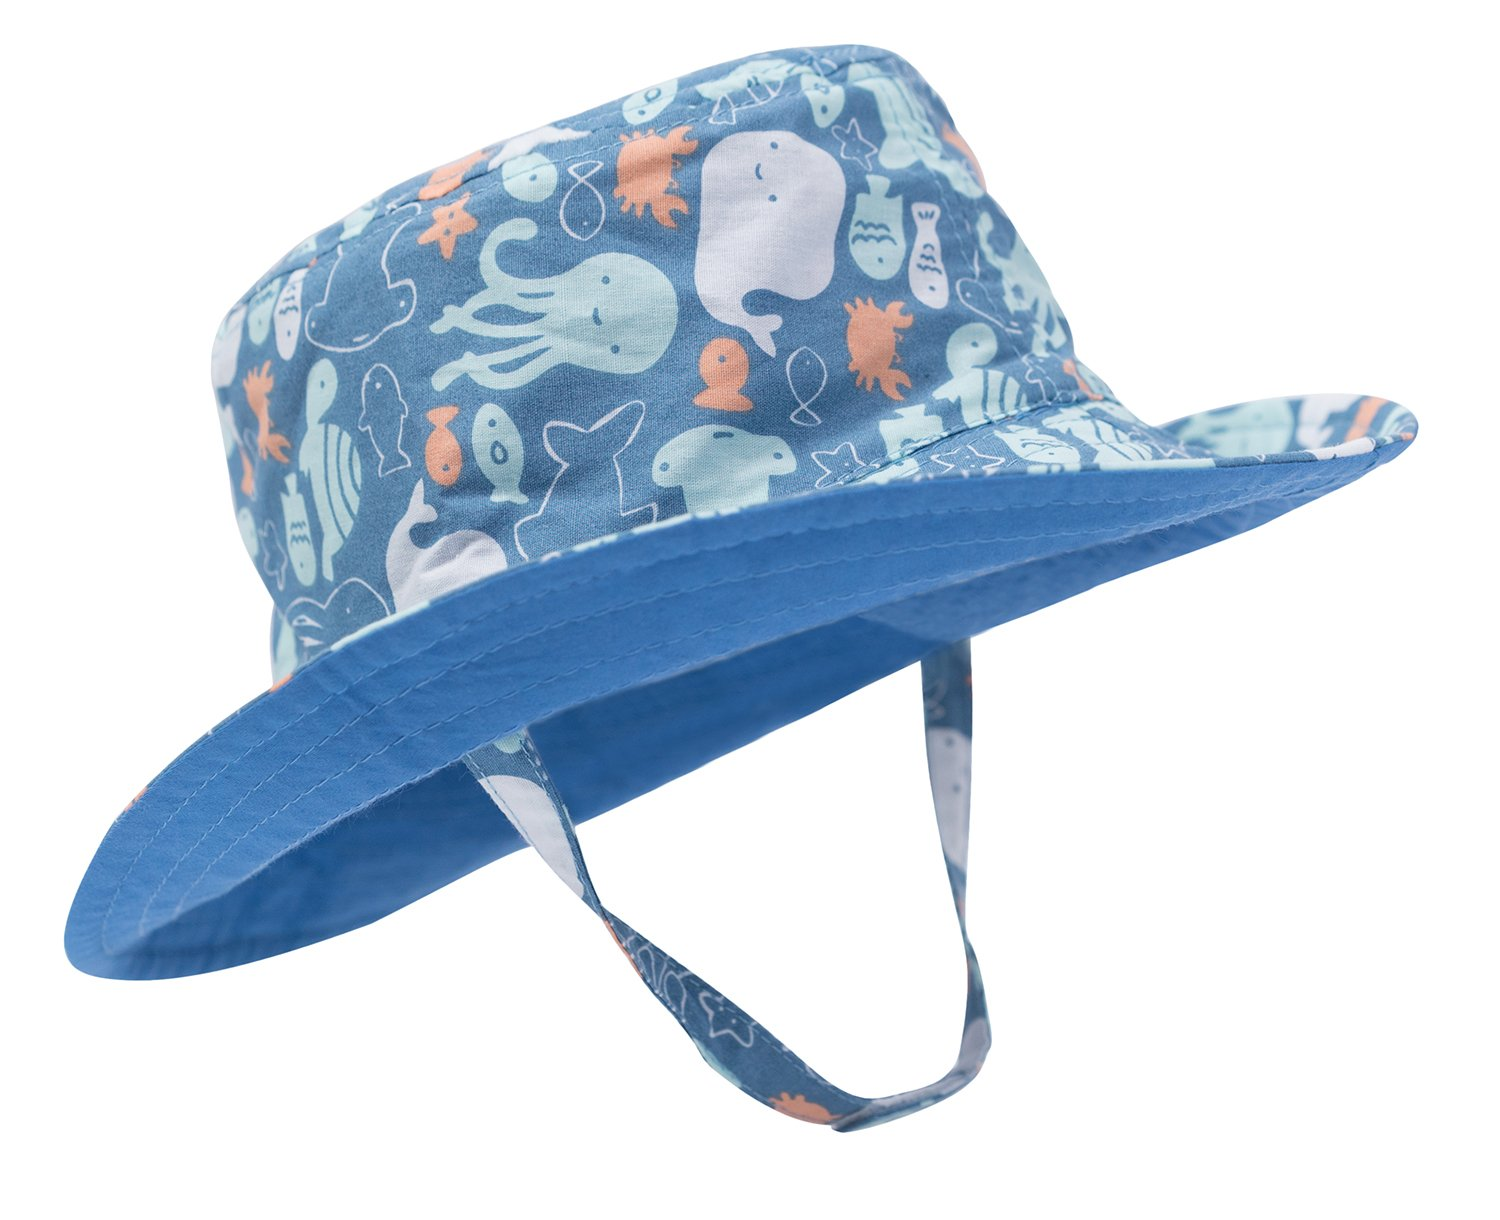 Eriso Baby Toddler Plaid Bucket Reversible Sun Protection Animal Hat ((19.7'') 12-24 Months, Octopus)